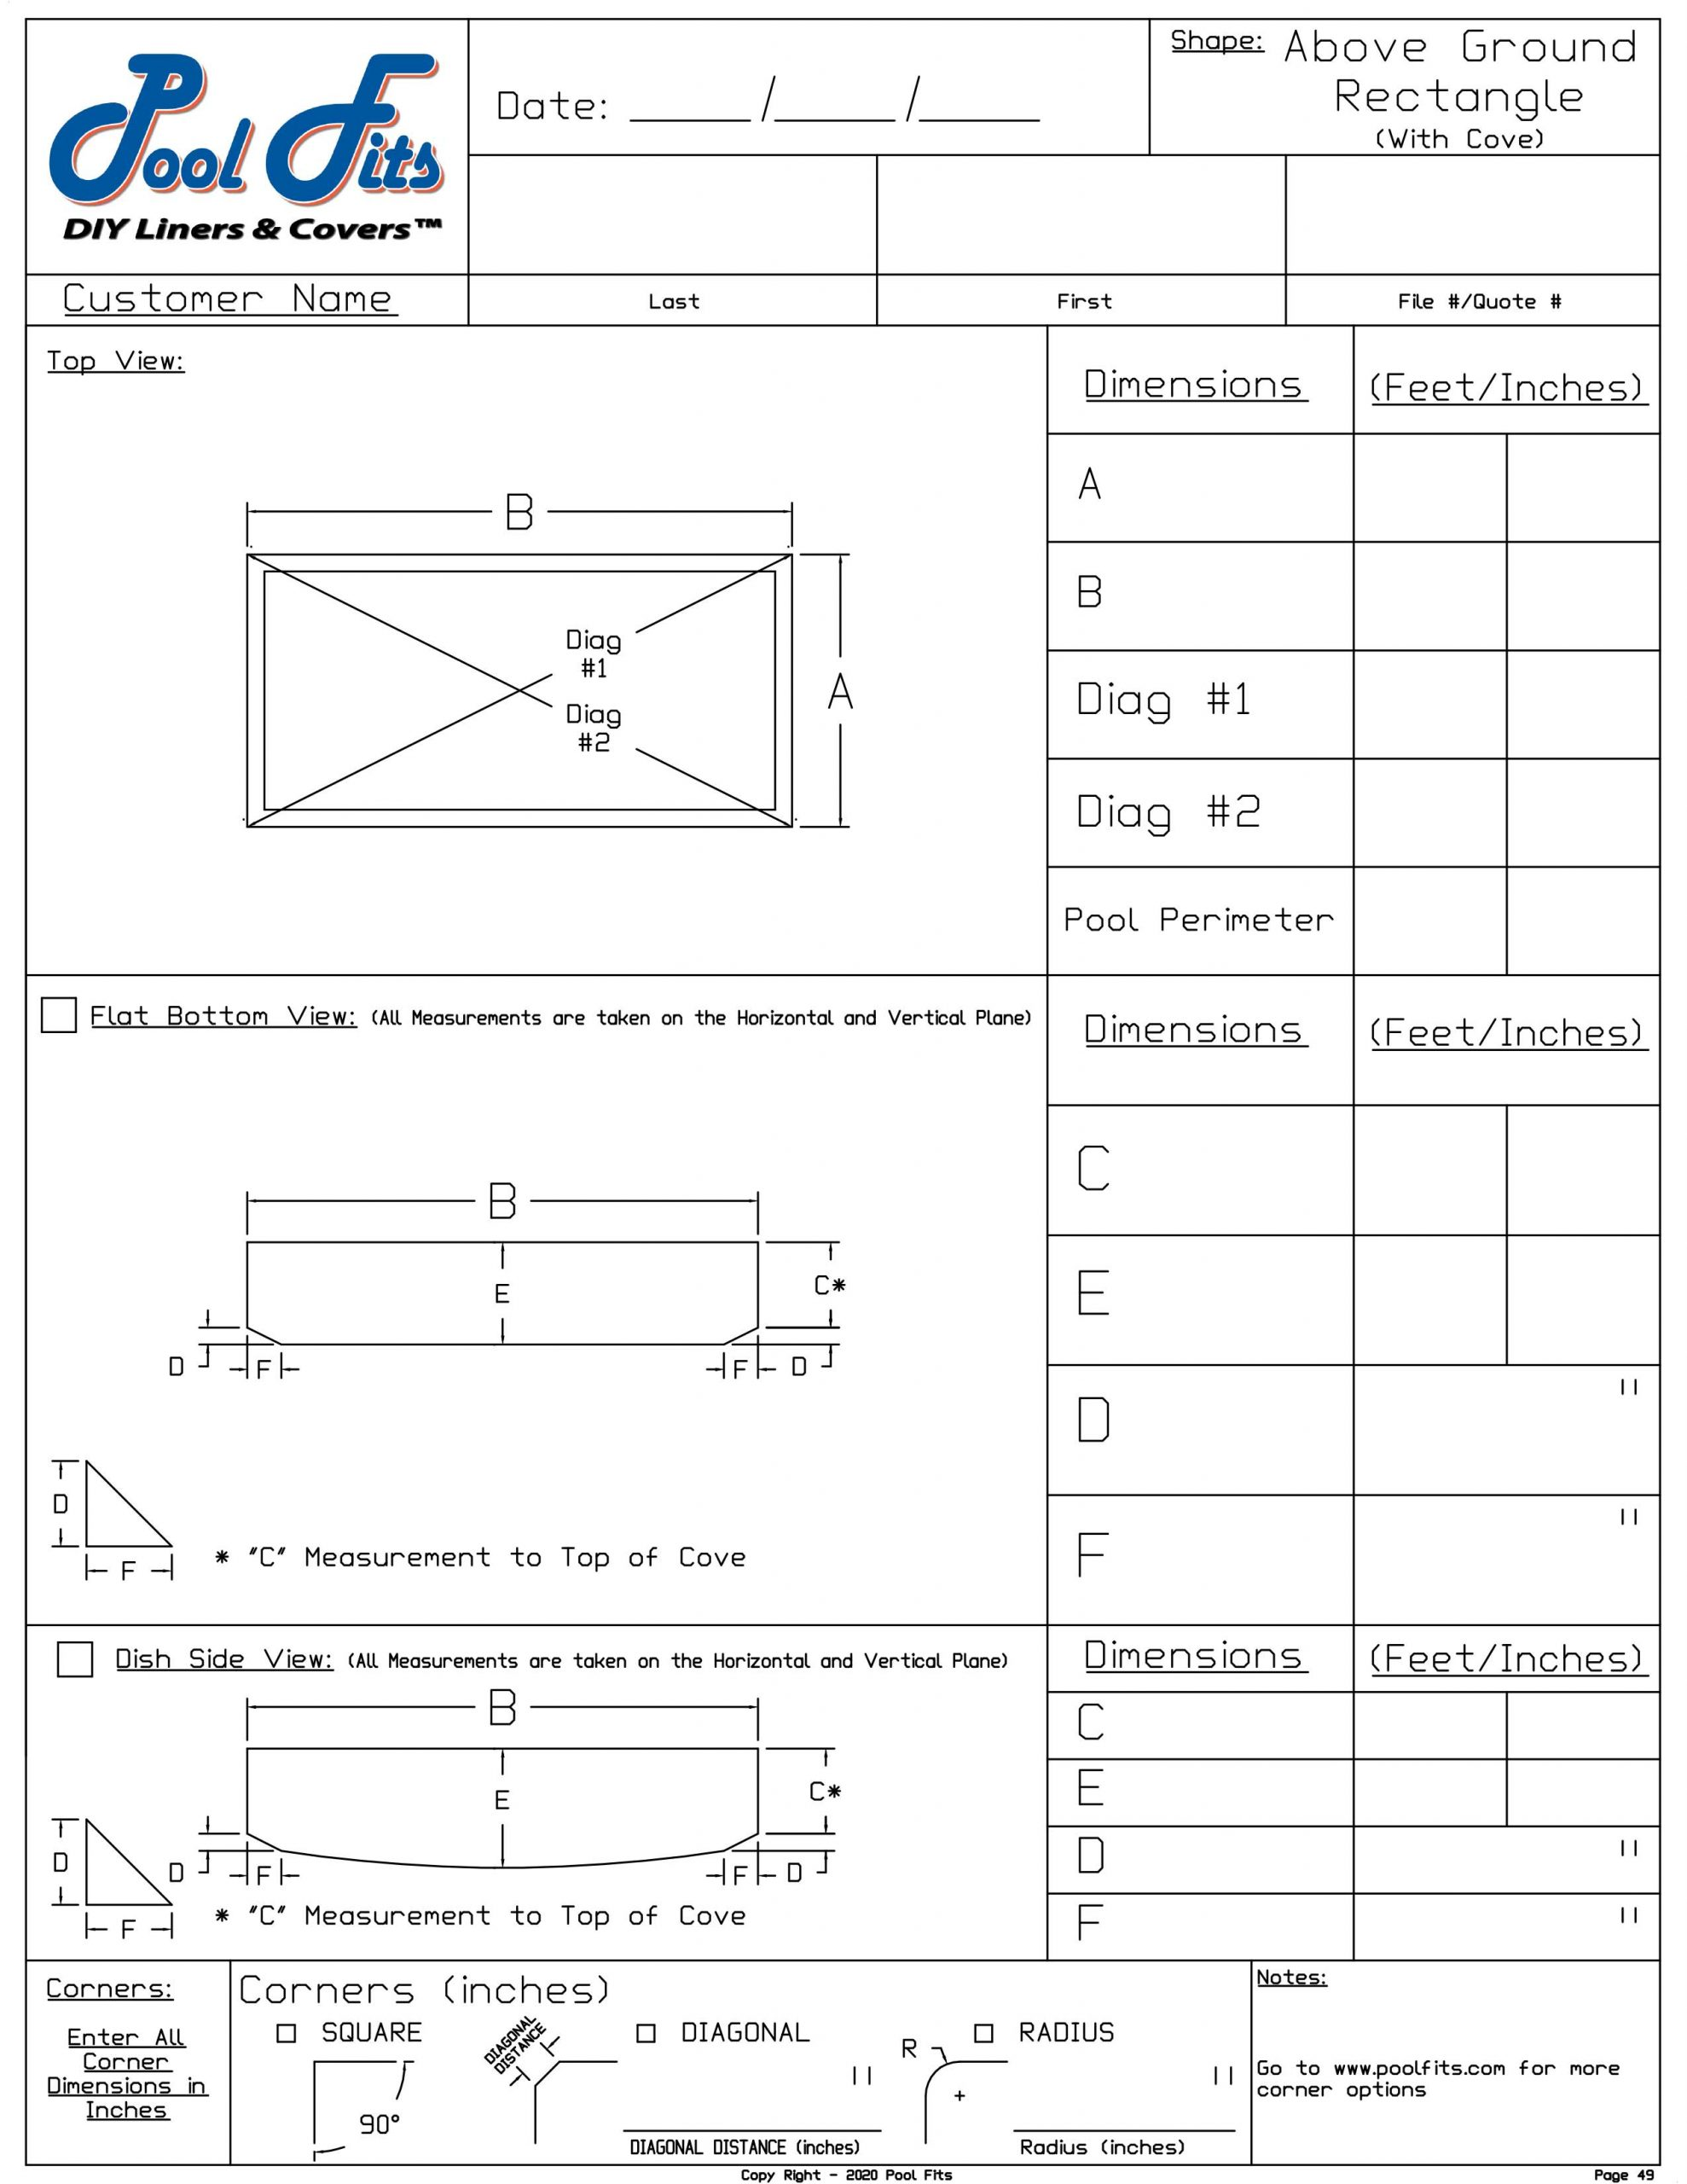 Above Ground Rectangle with Cove Measyrement Form